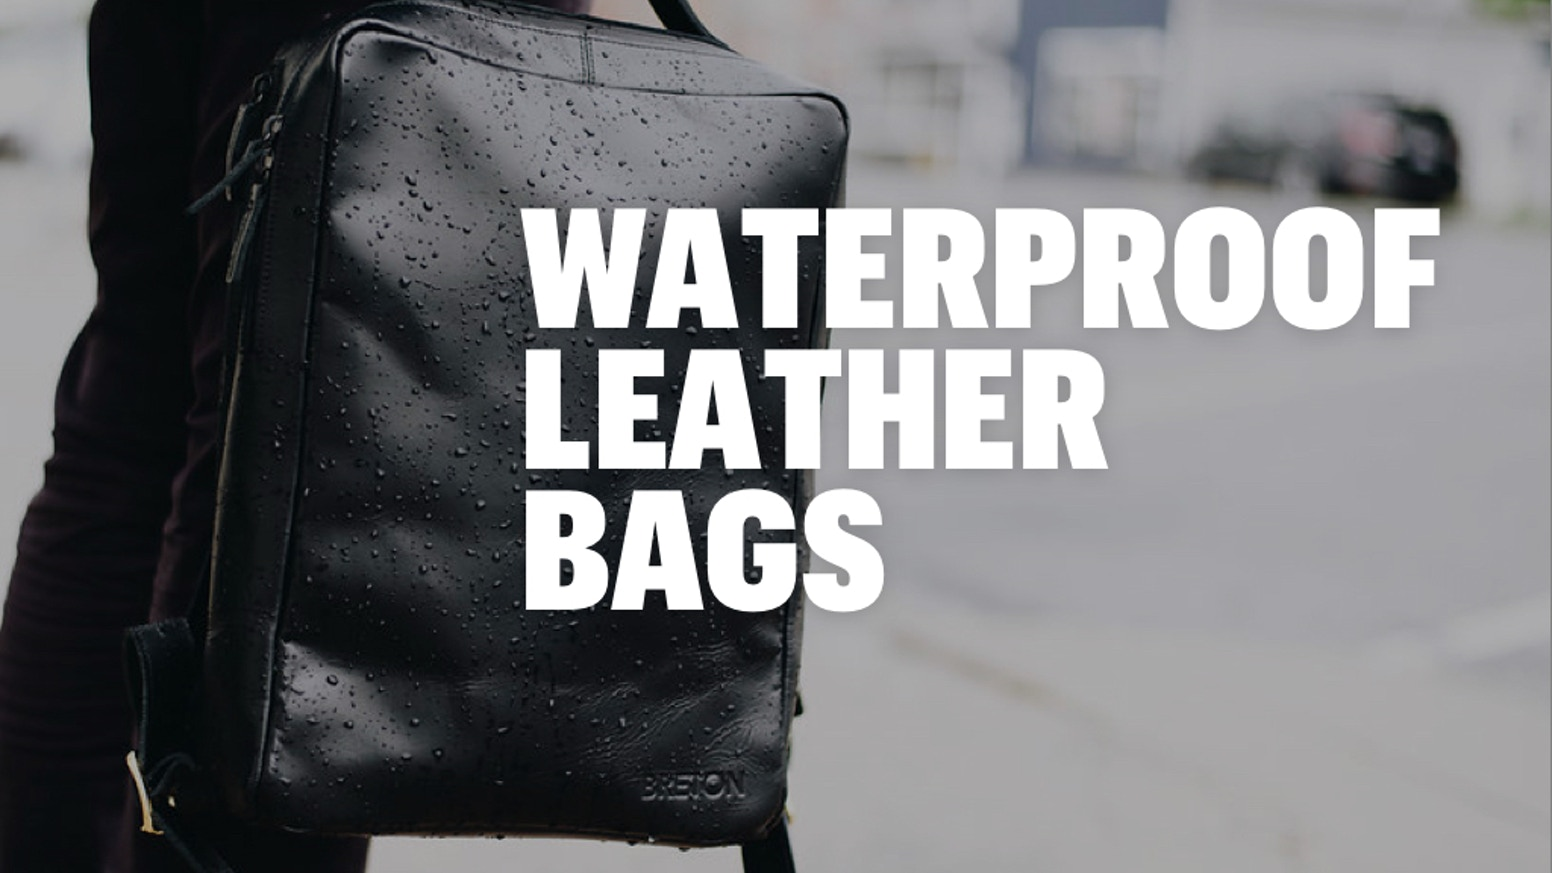 Waterproof Leather Bags that Combine the Durability and Beauty of Leather with Next-Gen Waterproof Technology